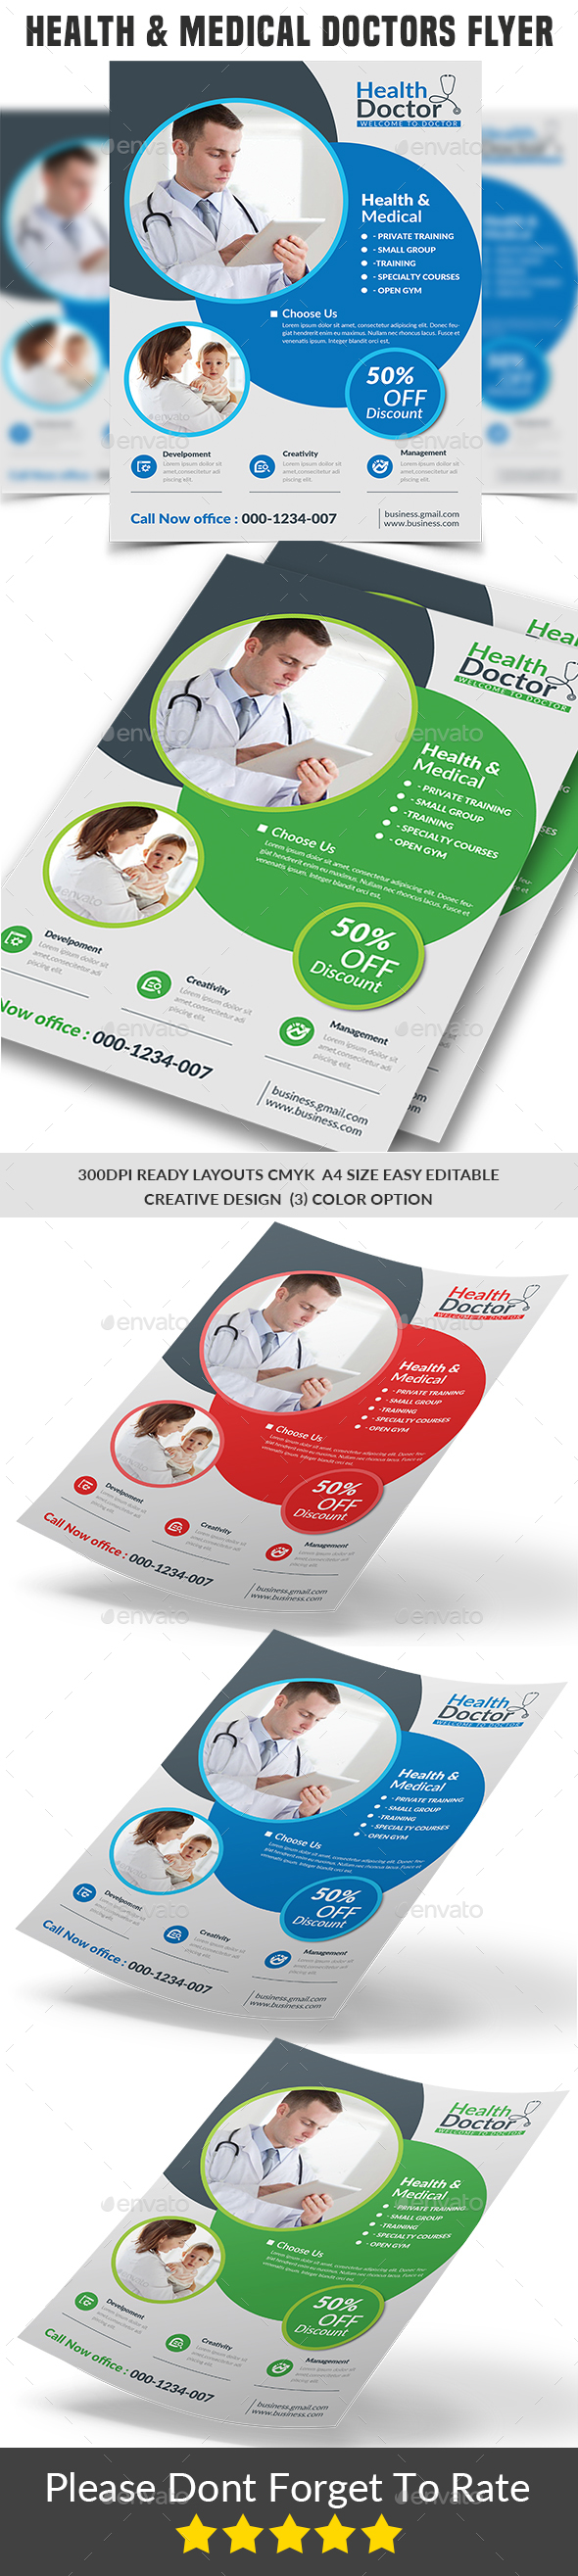 GraphicRiver Health & Medical Doctors Flyer 21178359